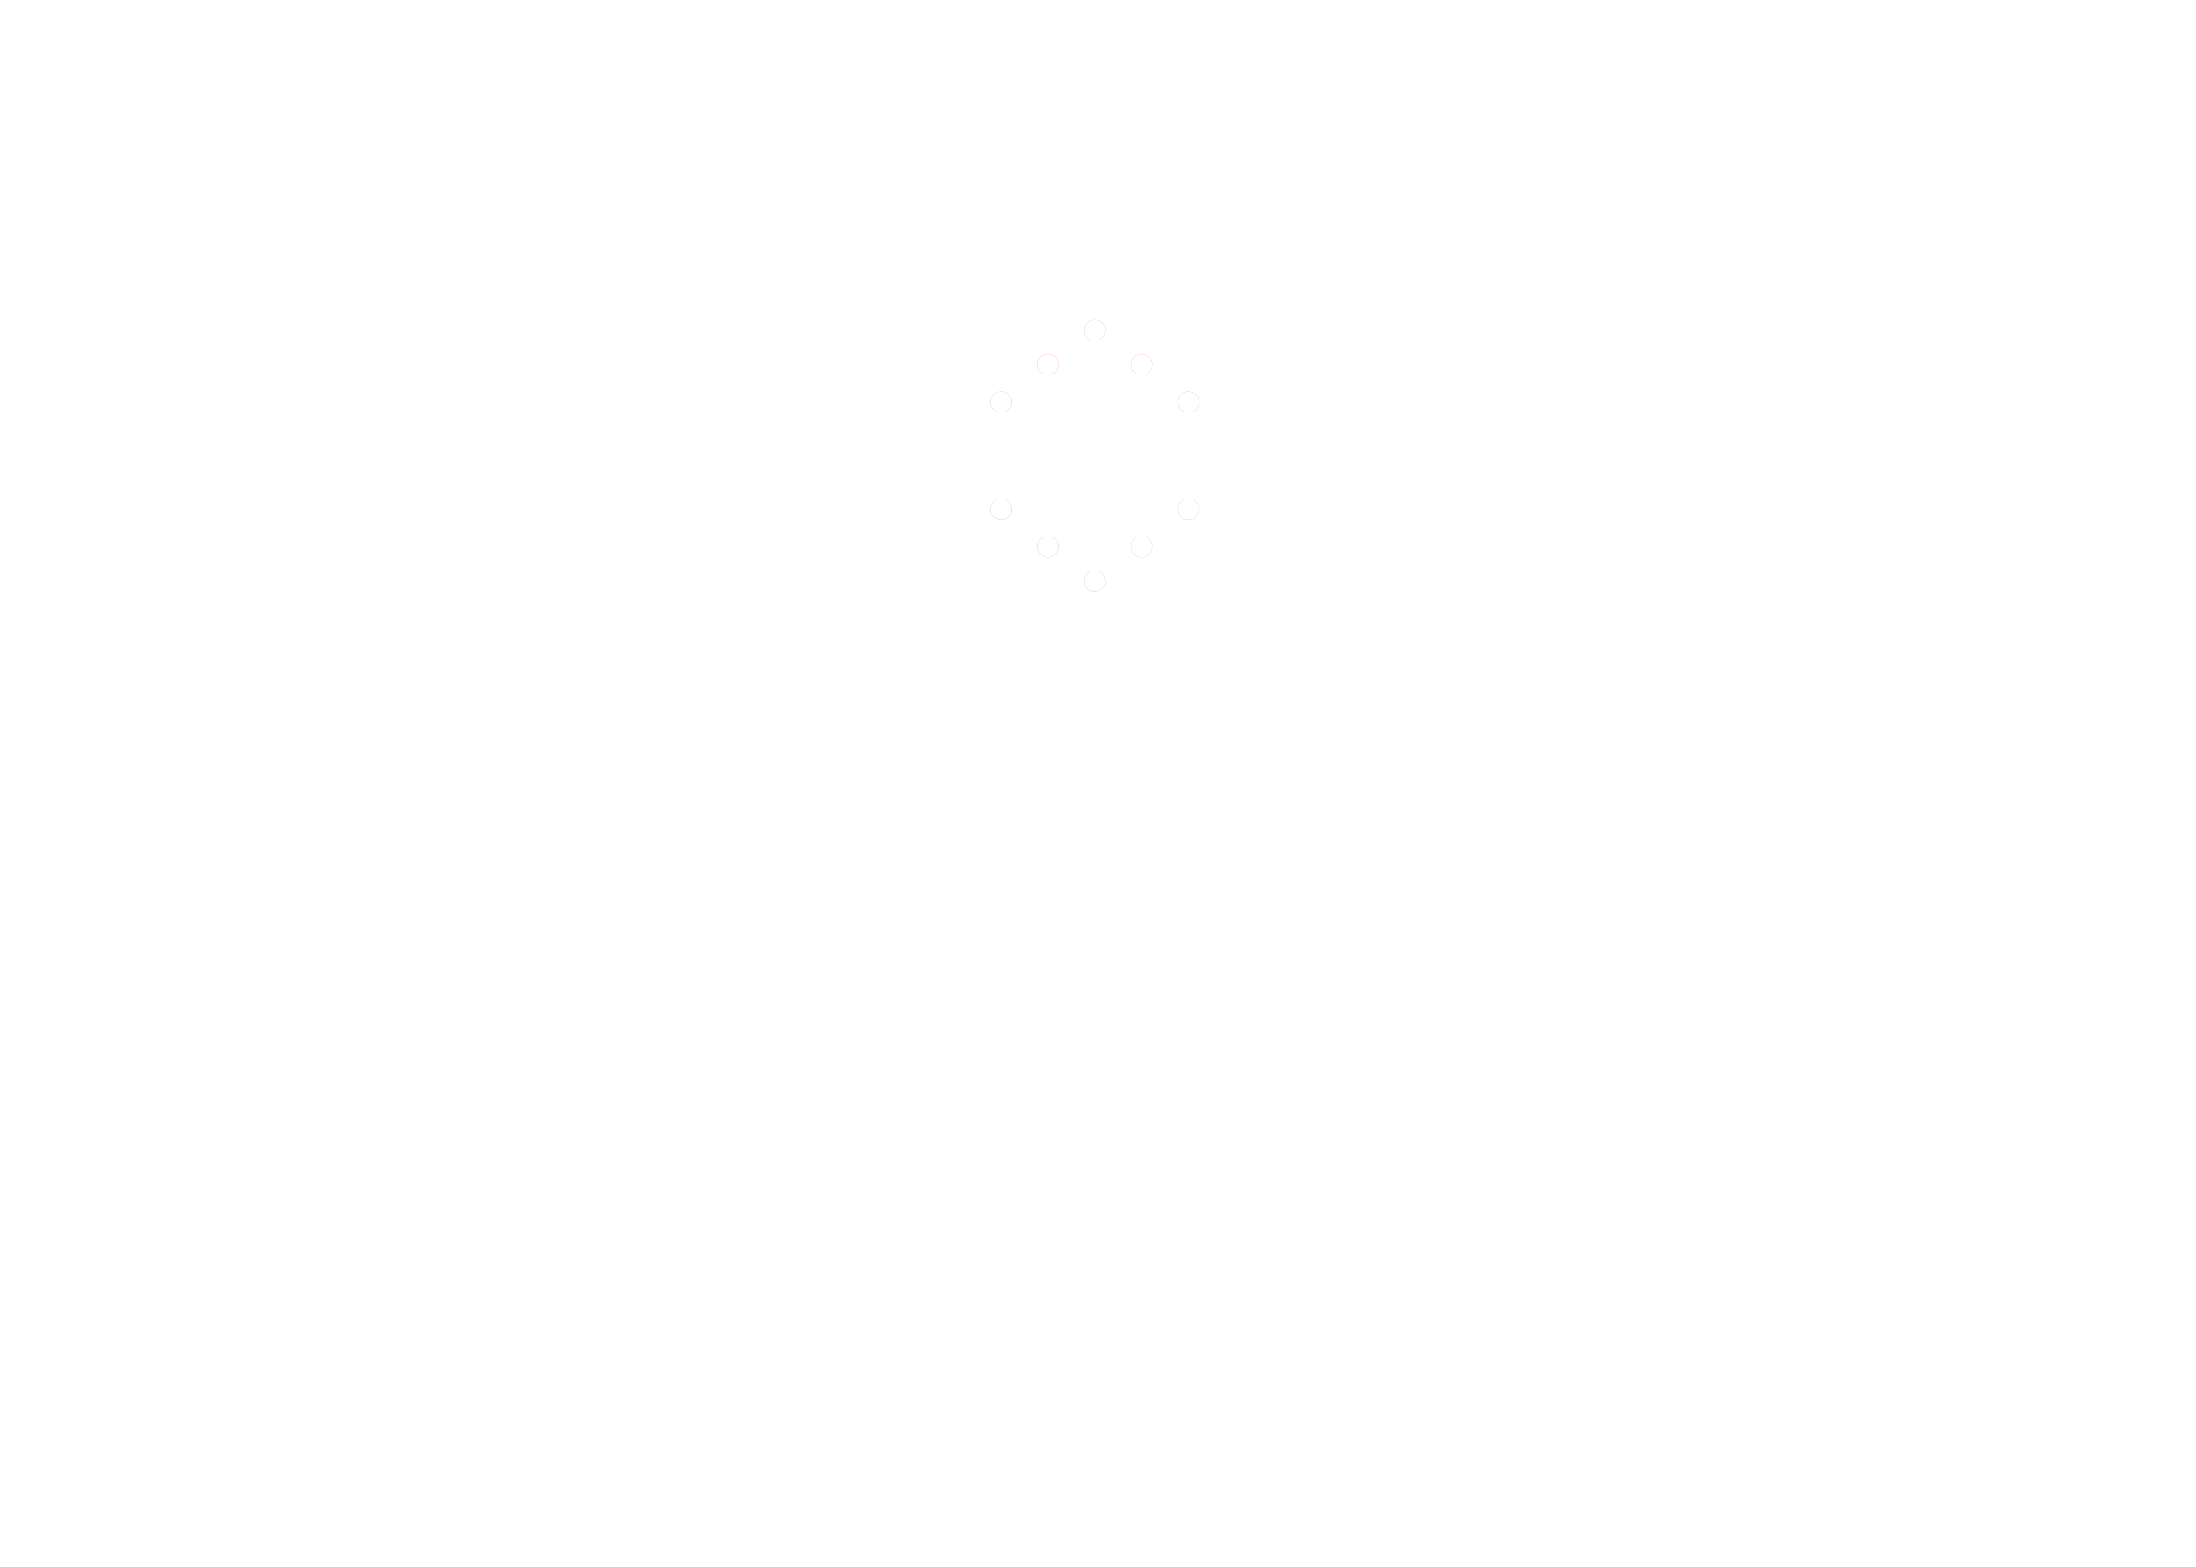 Enterprise Data Services Platform Logo